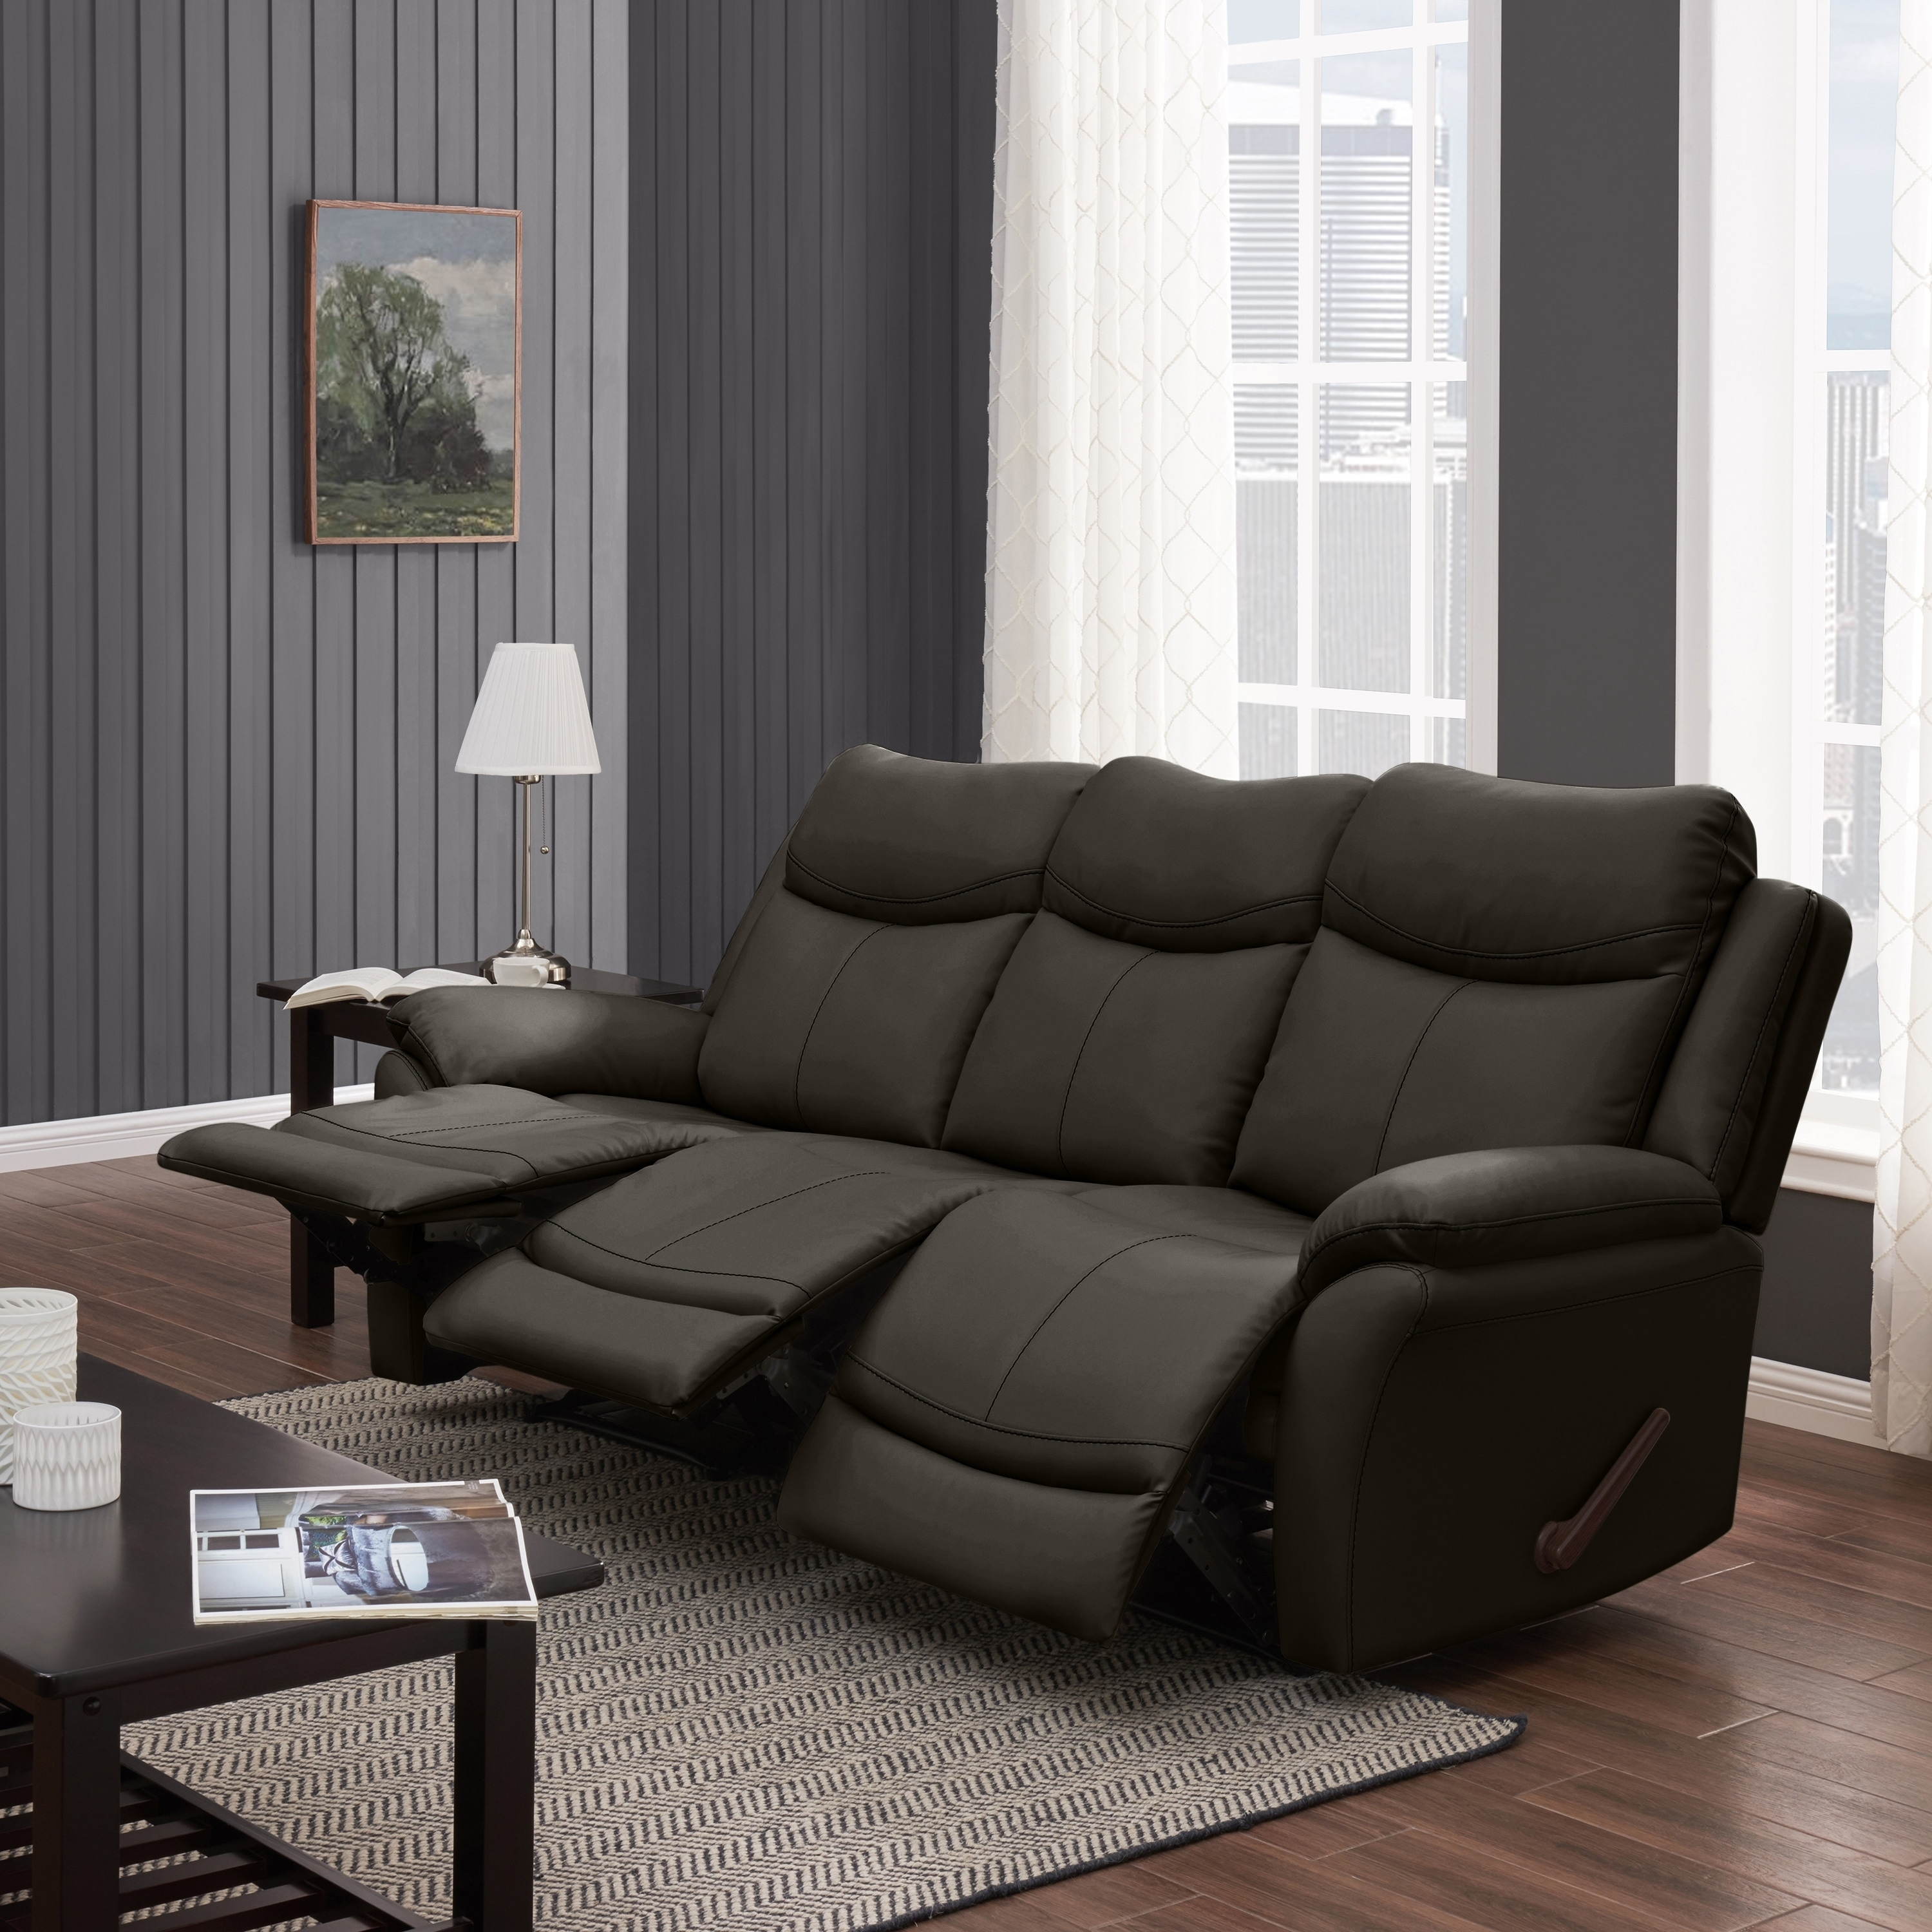 Details about Copper Grove Peqin 3-seat Faux Leather Recliner Sofa